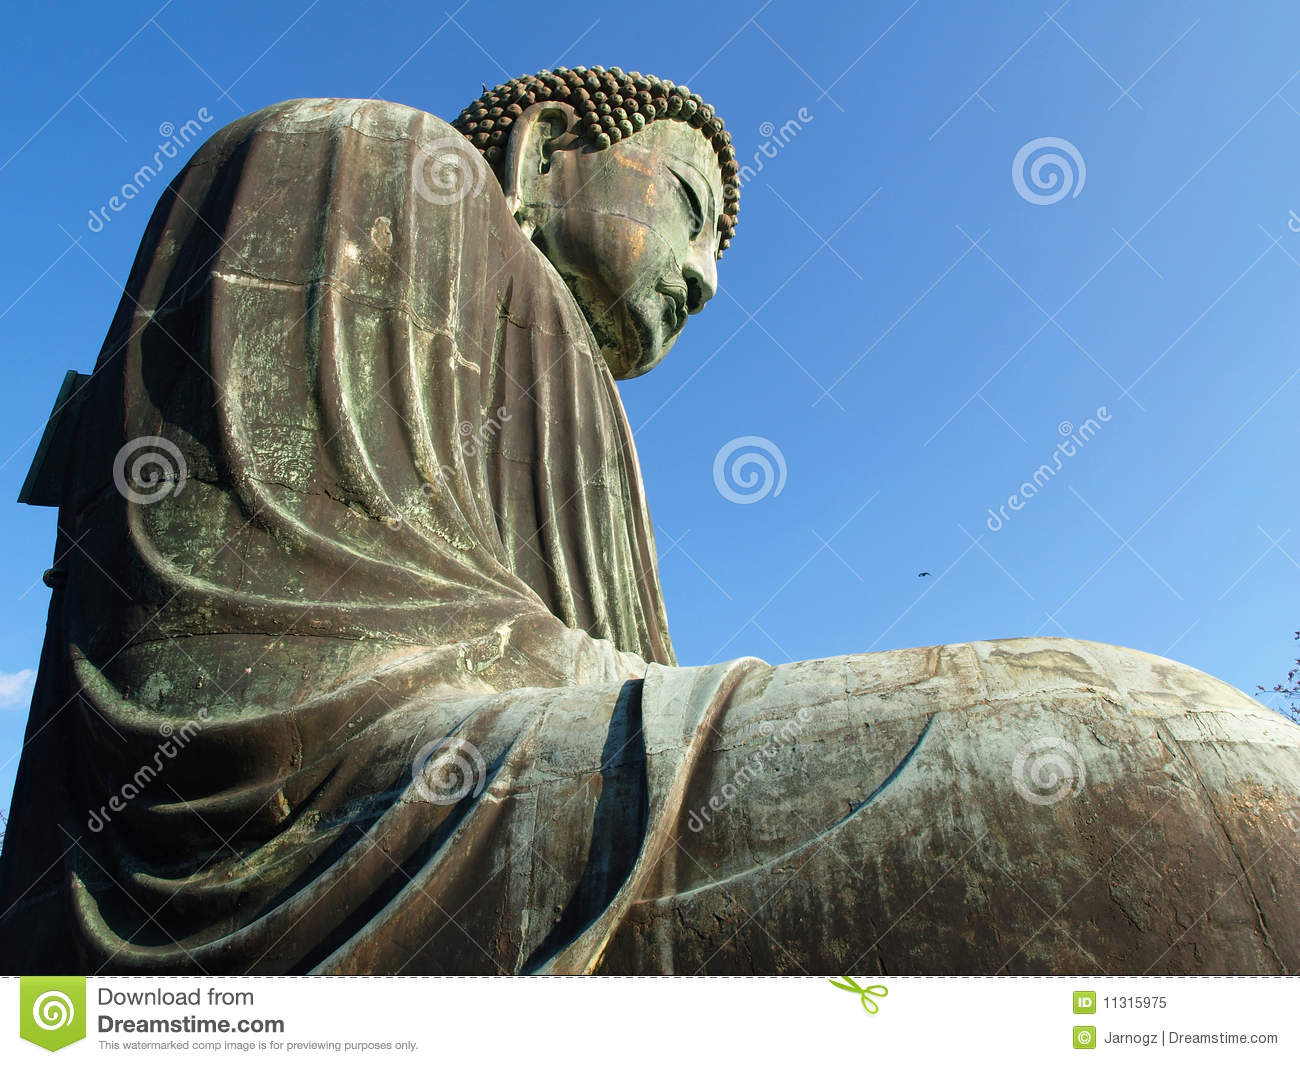 kamakura gro e buddha statue lizenzfreies stockfoto bild 11315975. Black Bedroom Furniture Sets. Home Design Ideas